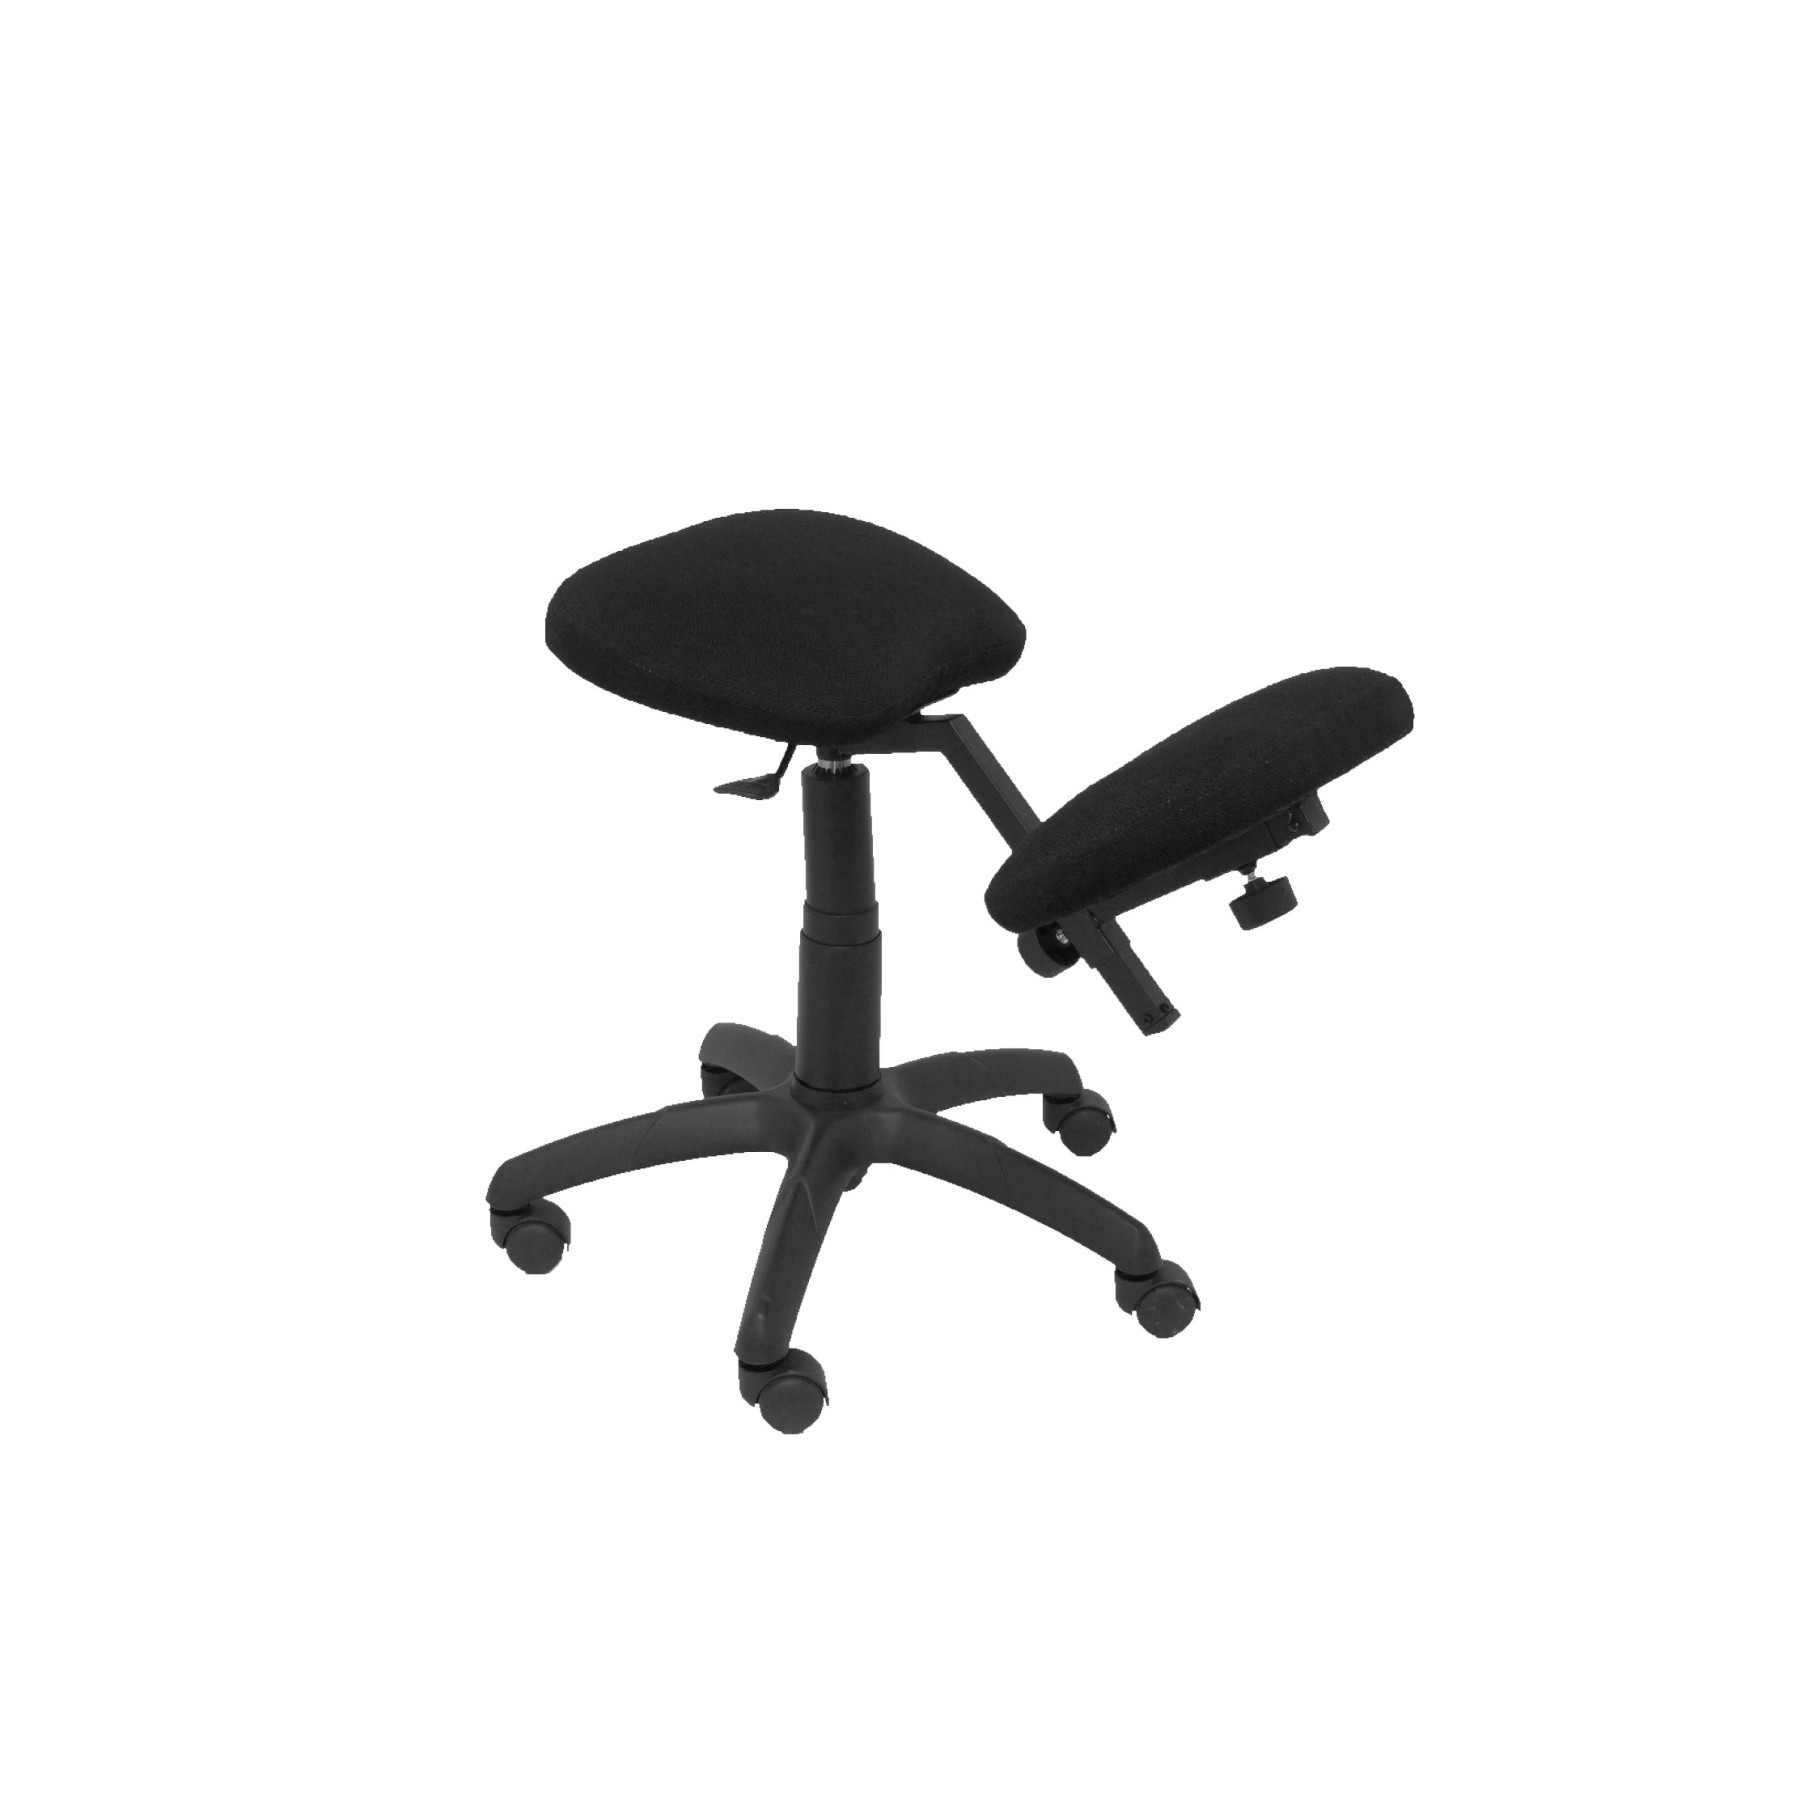 Office's Stool Ergonomic Swivel And Dimmable In High Altitude Up Seat Upholstered In BALI Tissue Color Black (KNEE